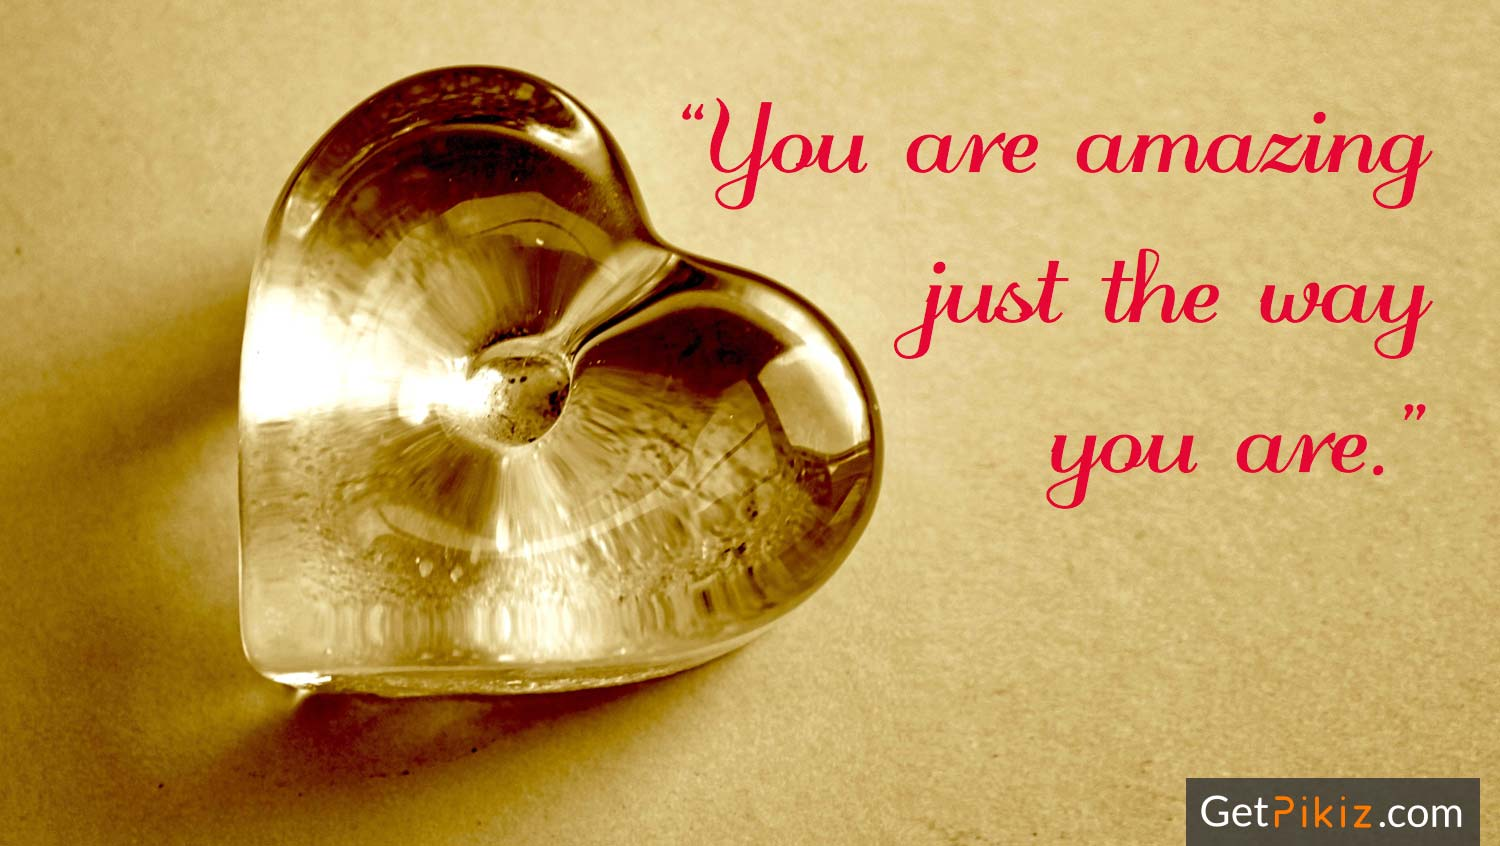 You are amazing just the way you are. Happy Valentine's Day!